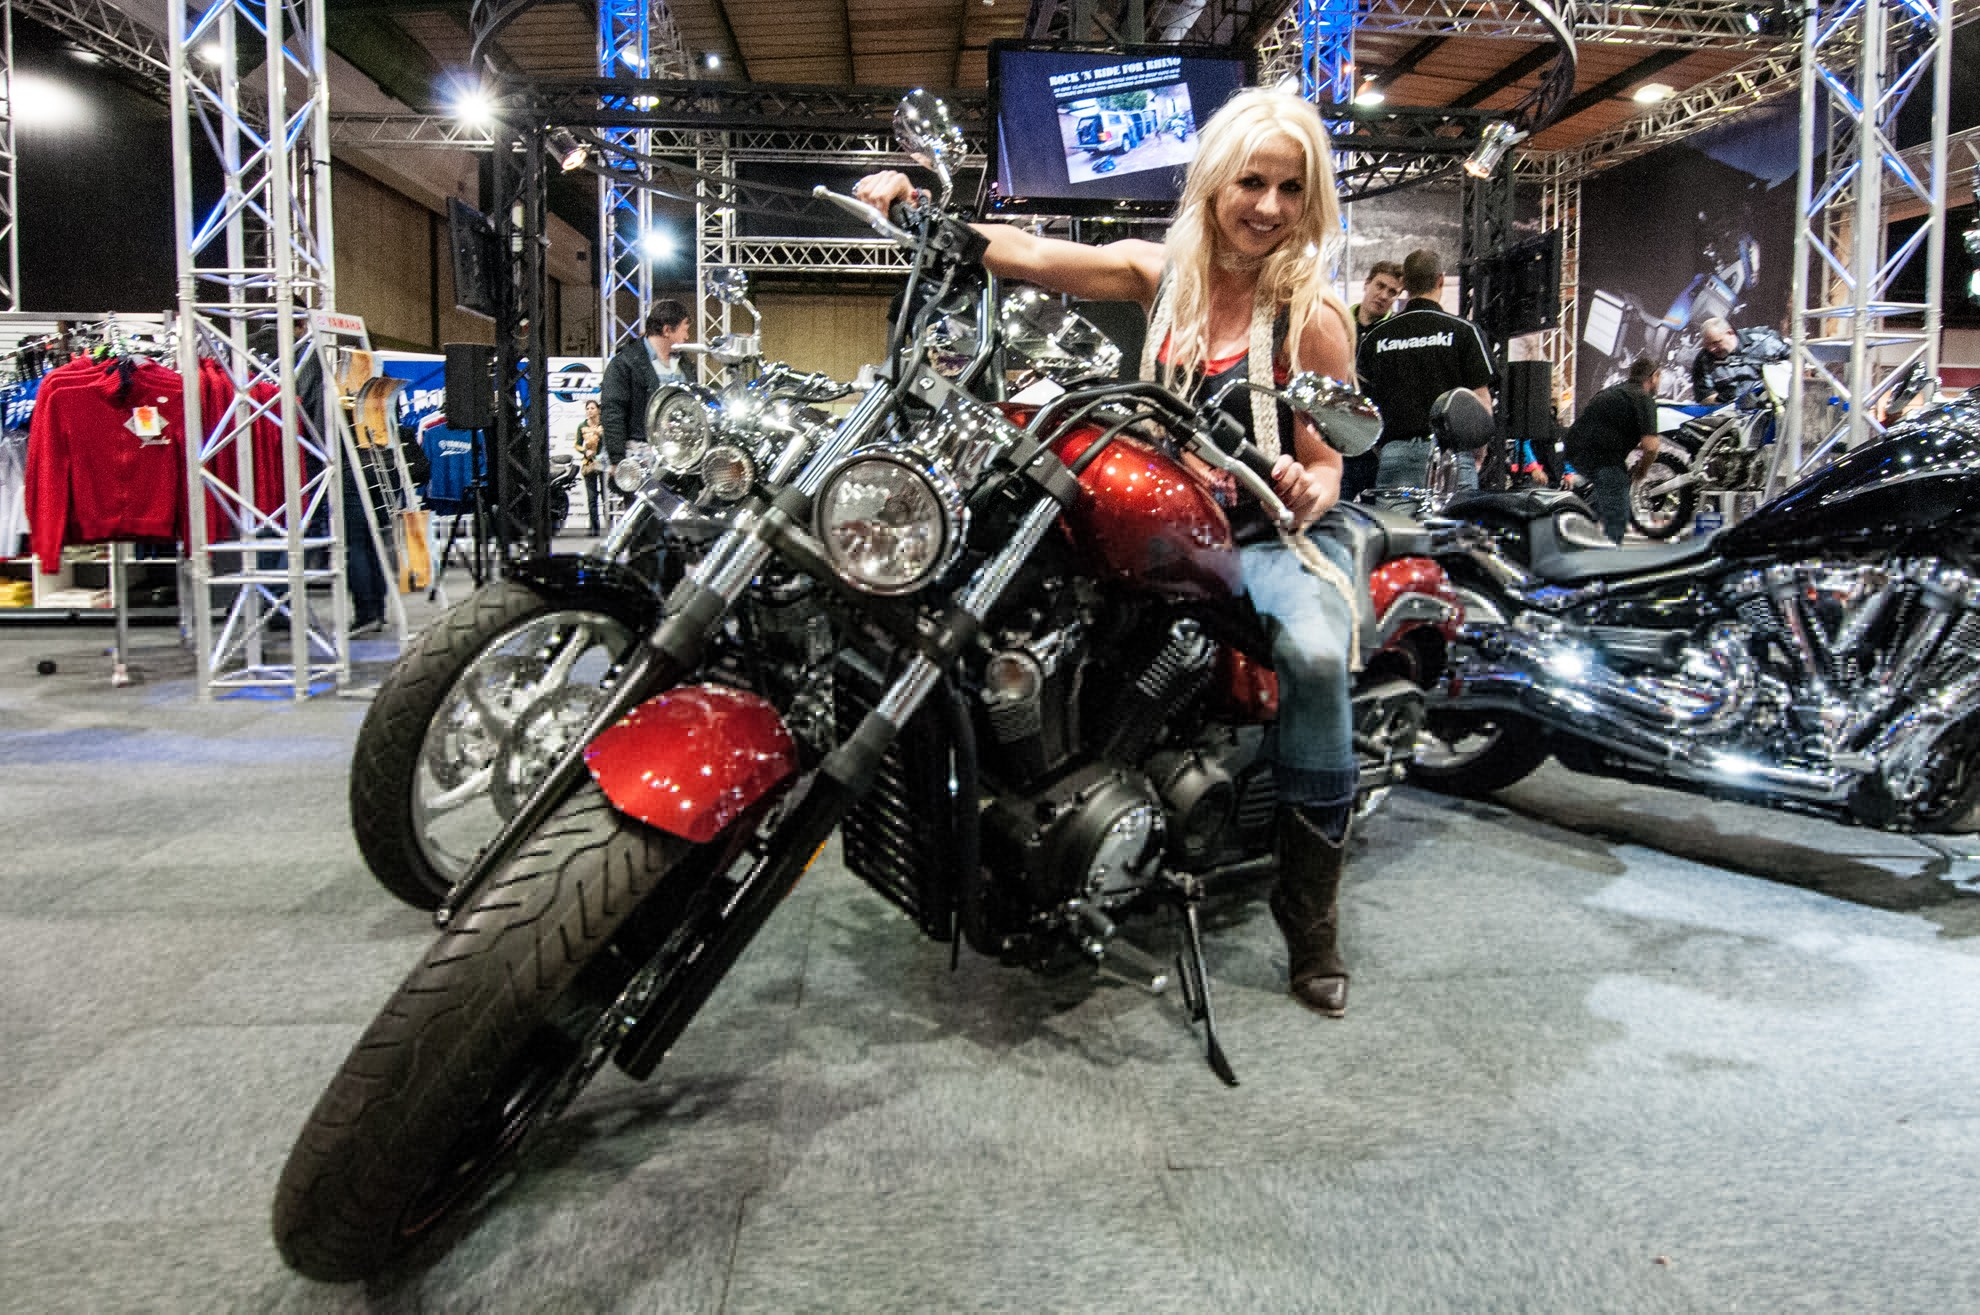 AMID_Motorcycle_show